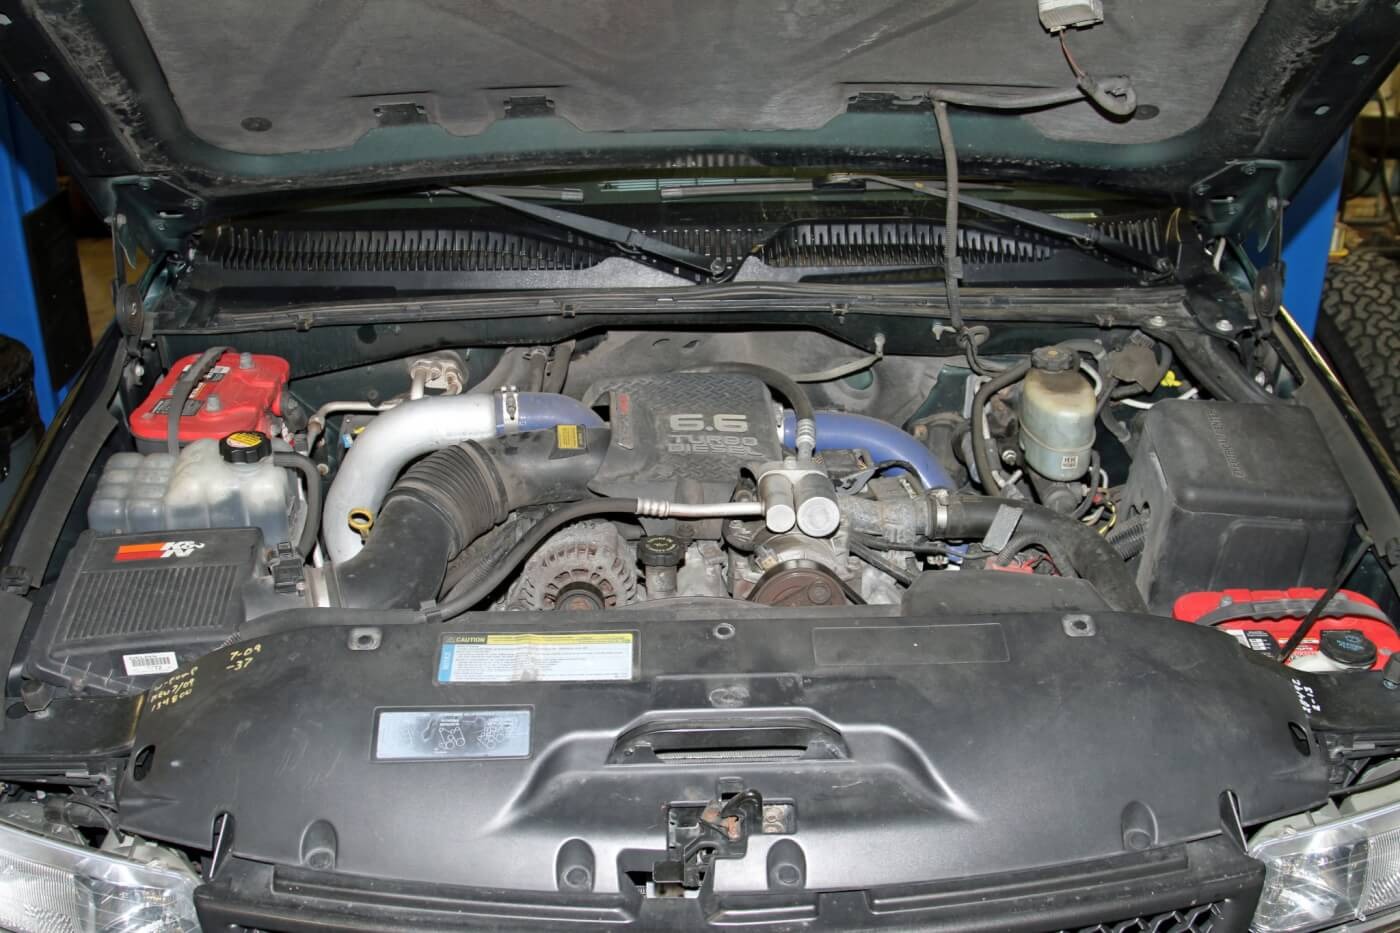 diy duramax fuel fix: rebuilding a leaky fuel filter head